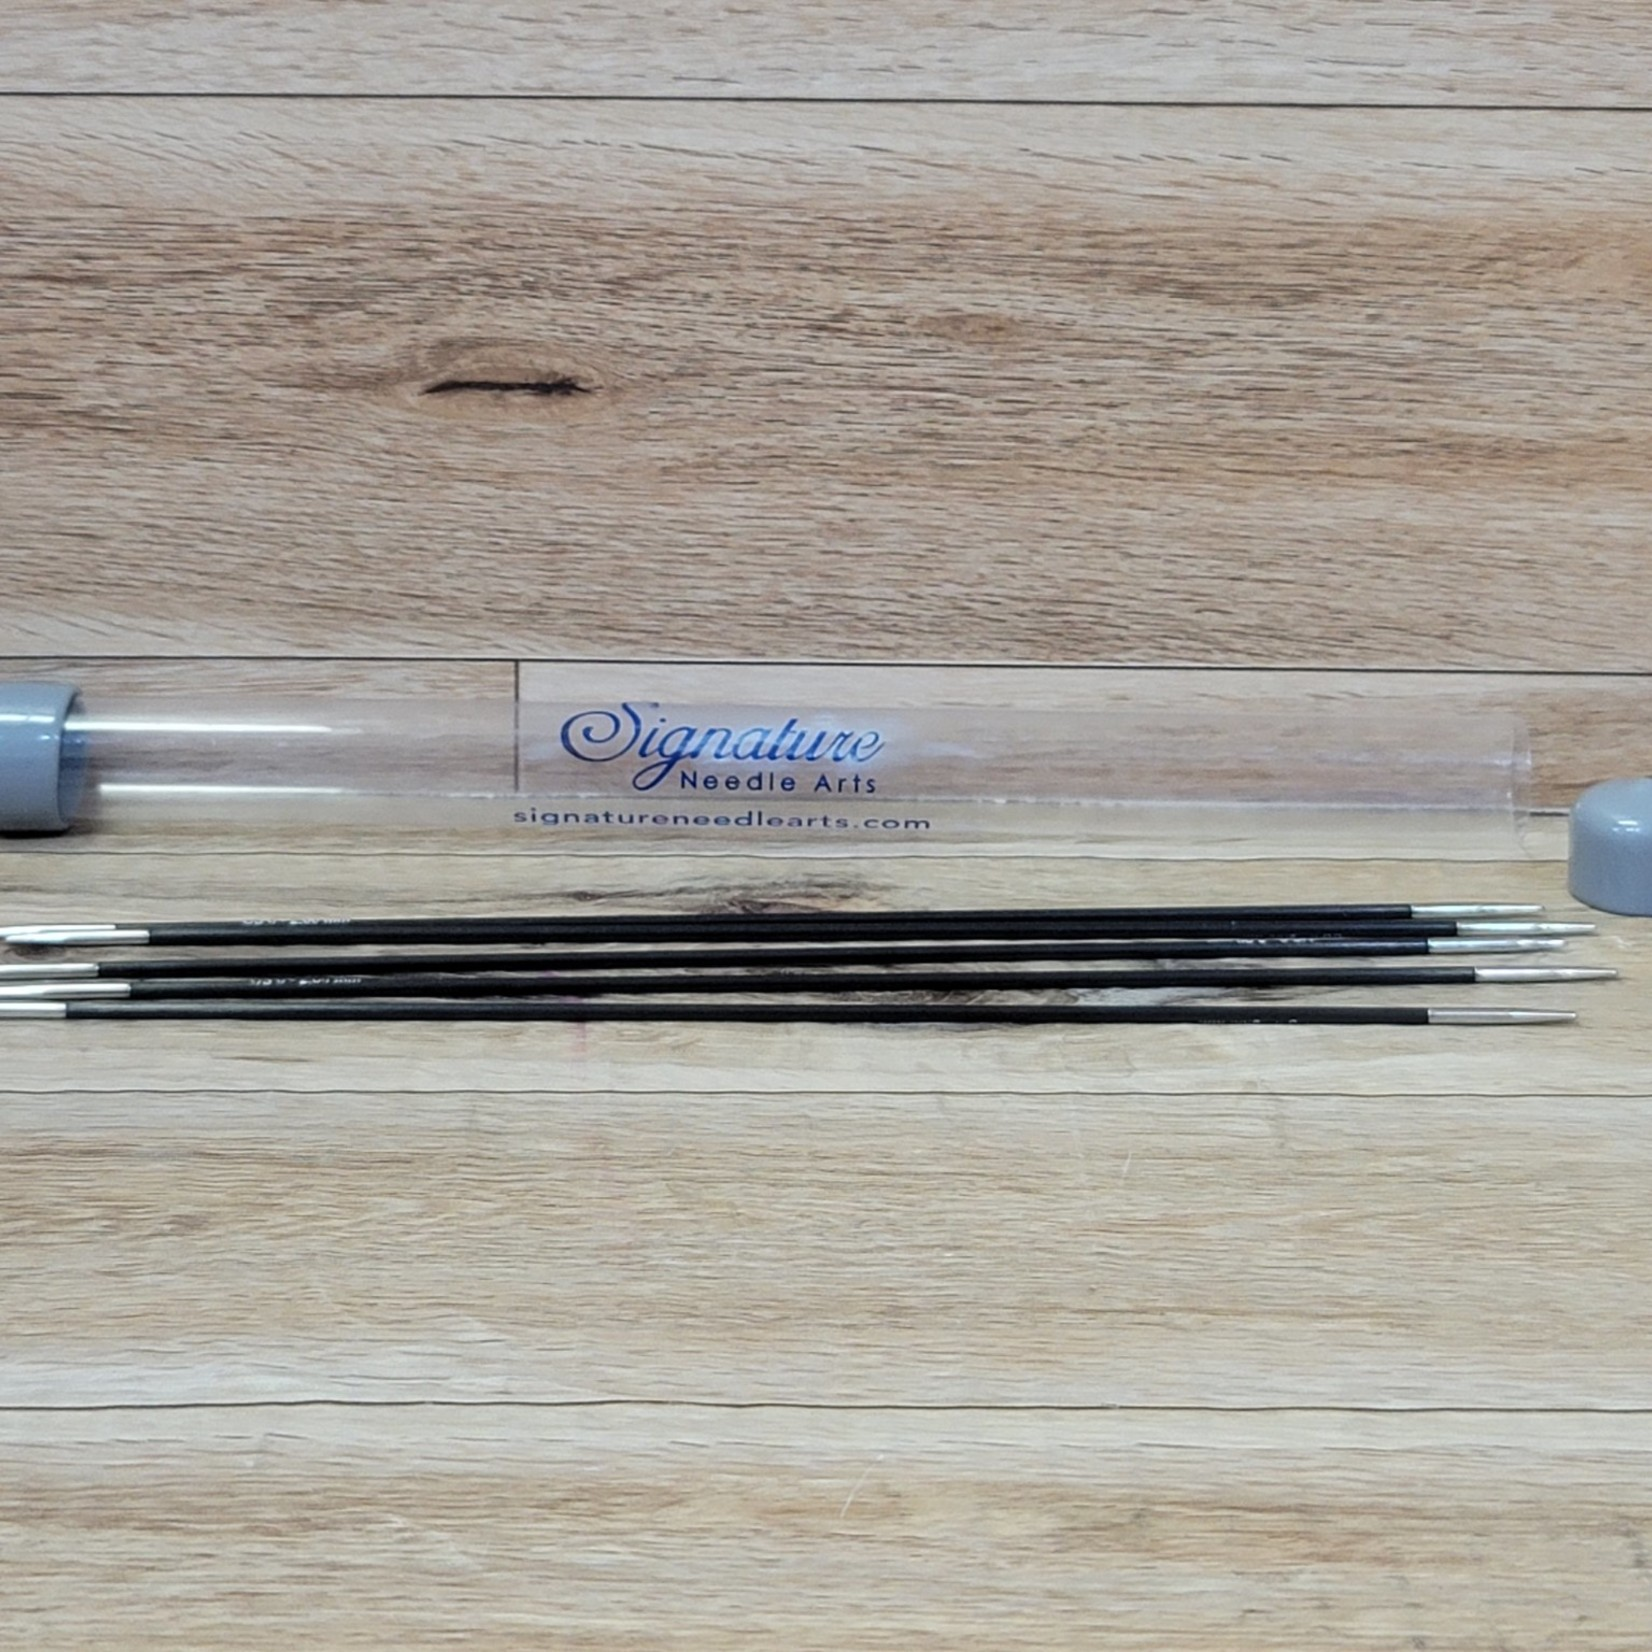 Knitter's Pride Karbonz -  Set of 5 double pointed knitting needles - US 0 - 2.00mm